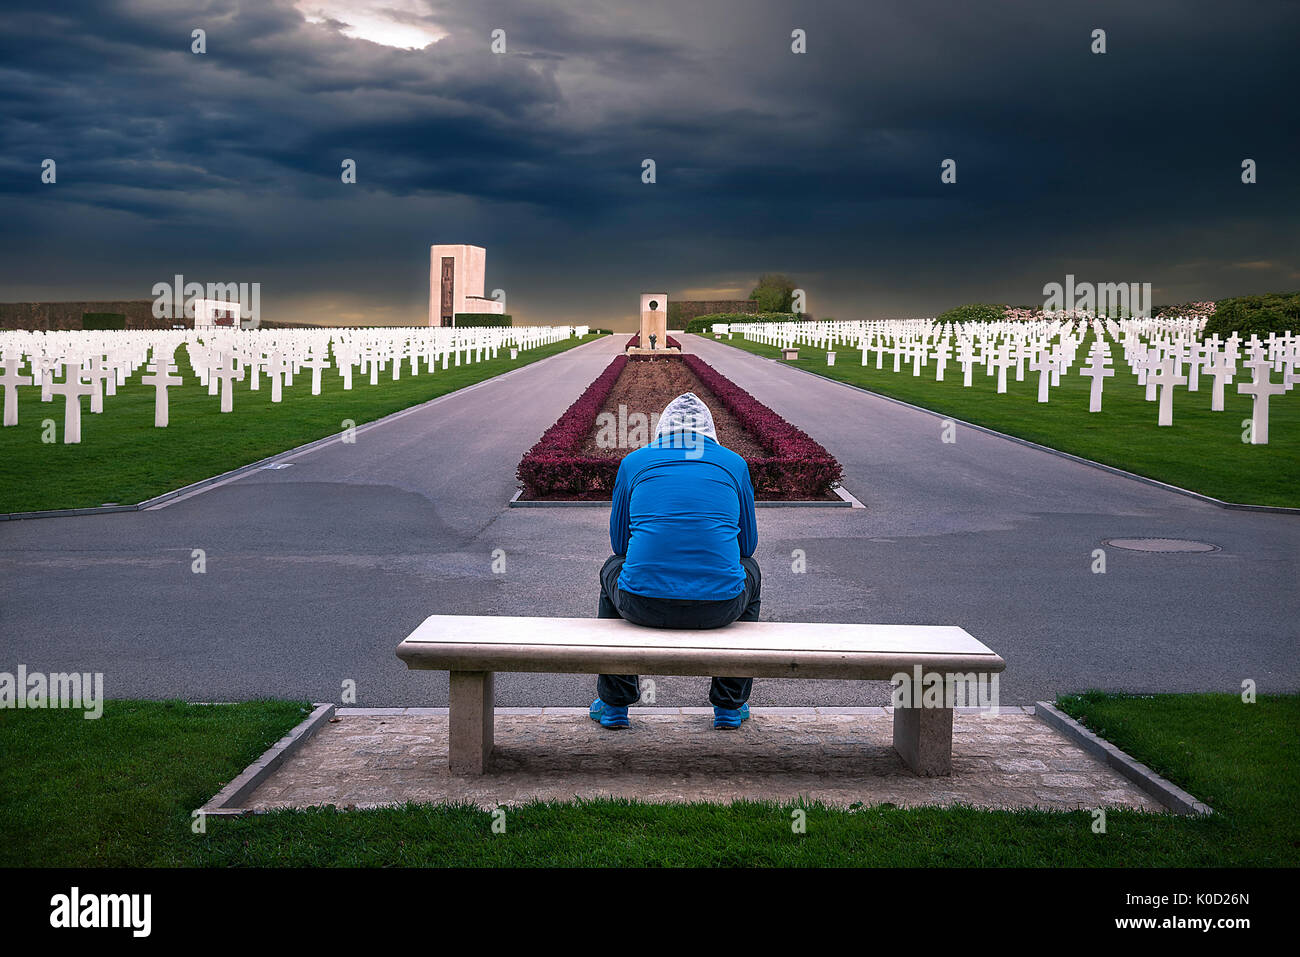 Man sitting on a bench and thinking about all the soldiers that are honored through this American memorial cemetery, located in Luxembourg. - Stock Image